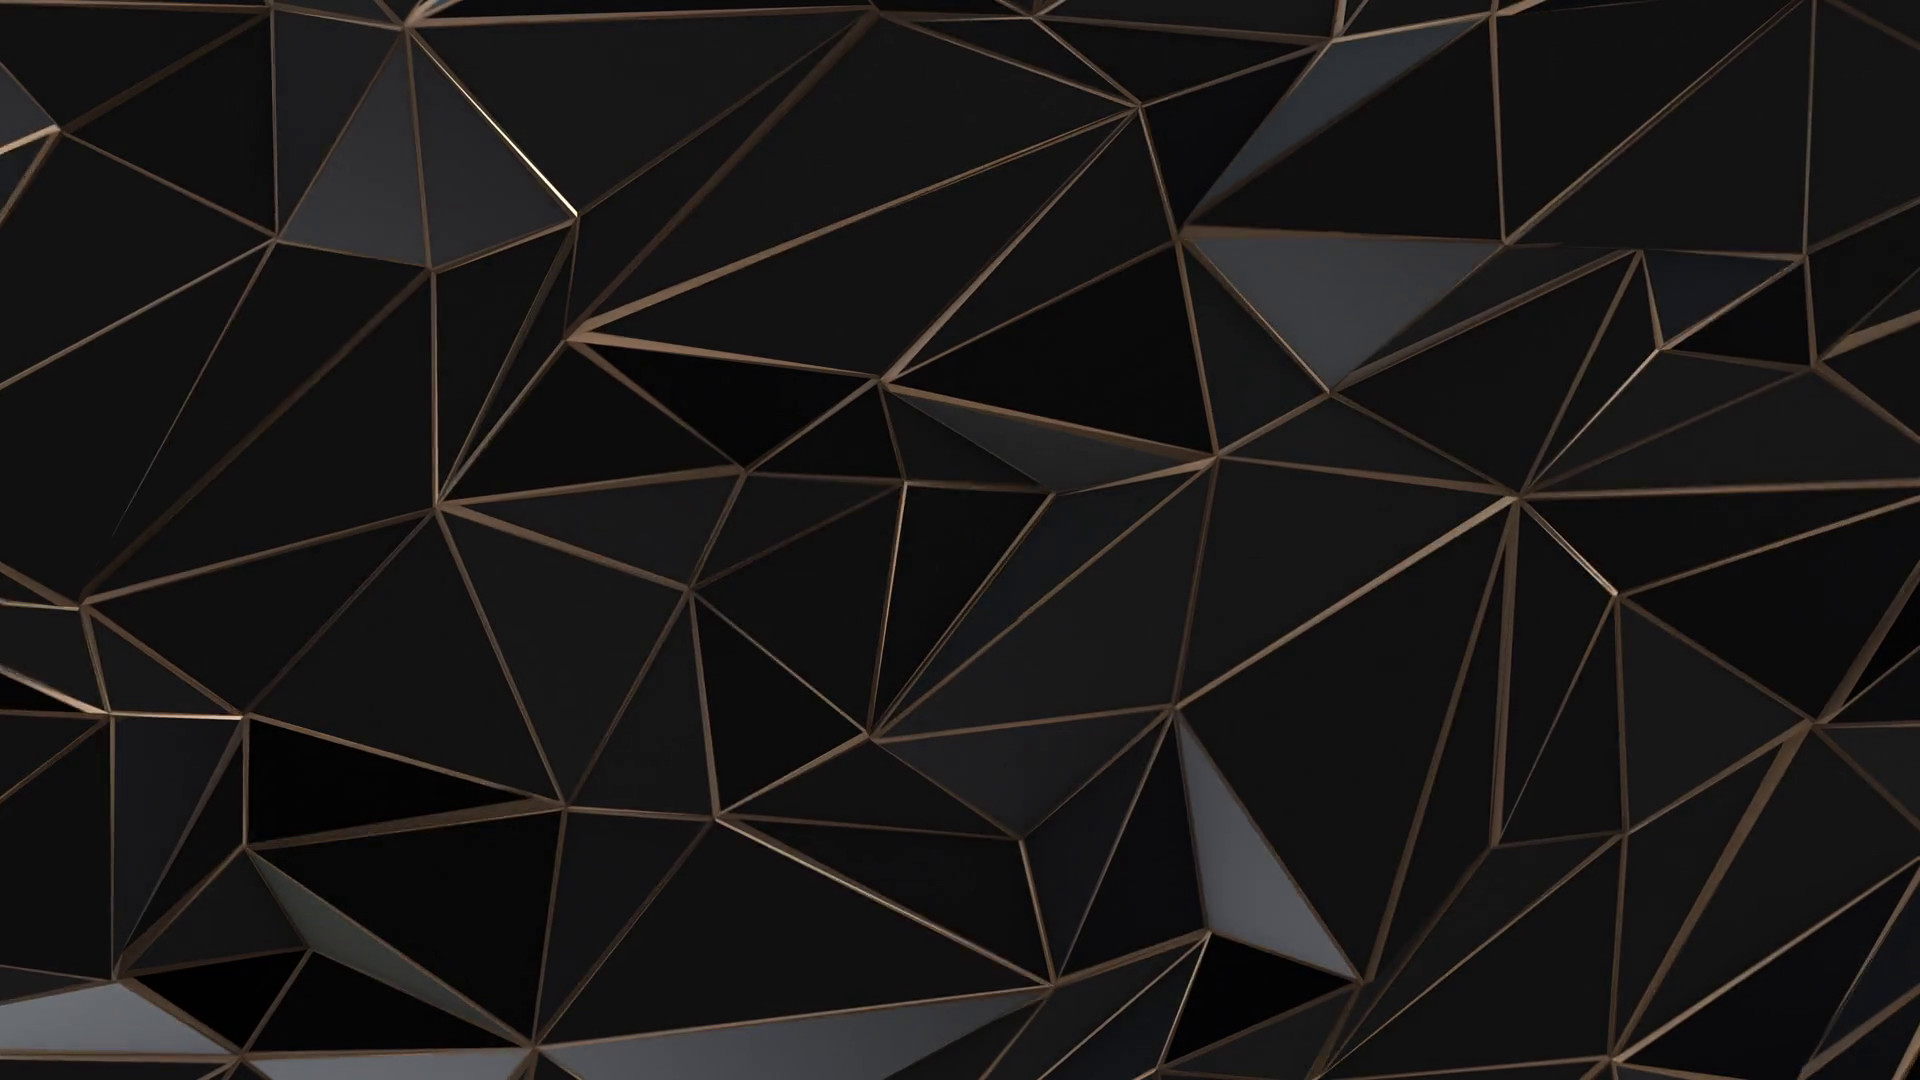 black and gold crystal view background free download #5107